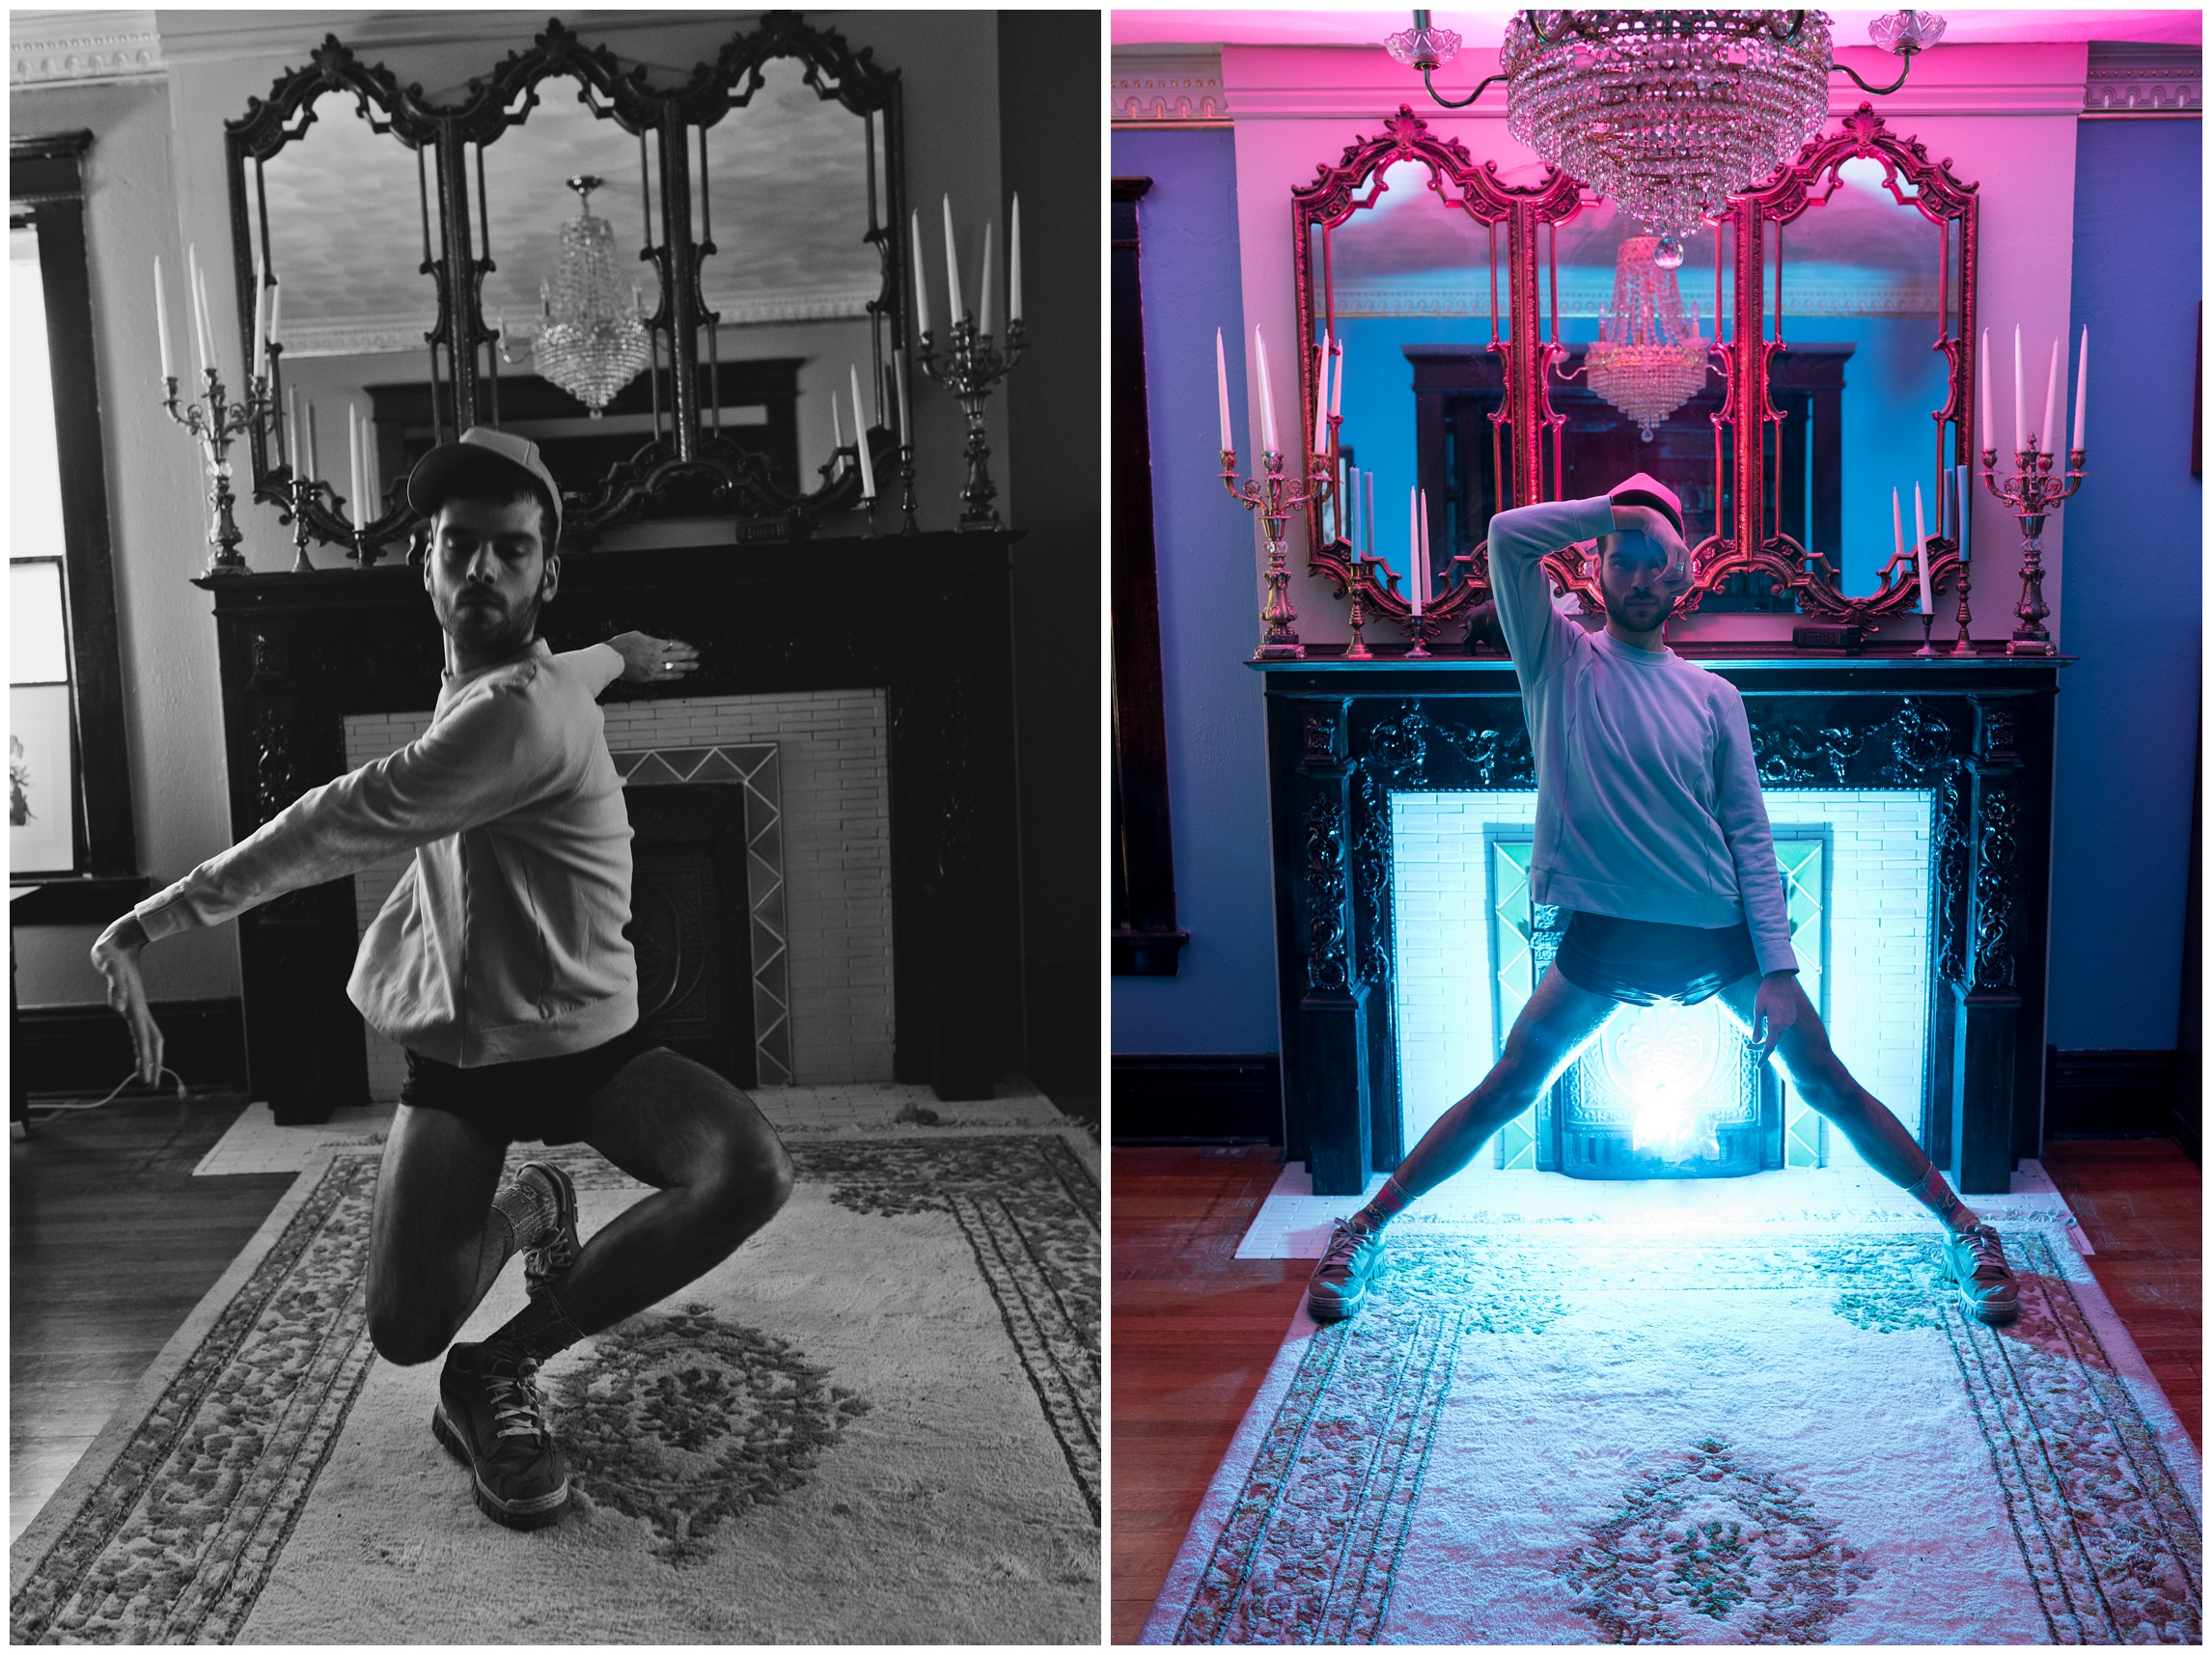 Ryan Page in action, dancing in a darkly lit room in Denver, Colorado with a fancy chandelier. Portrait of a dancer photographed by Sonja K Photography.